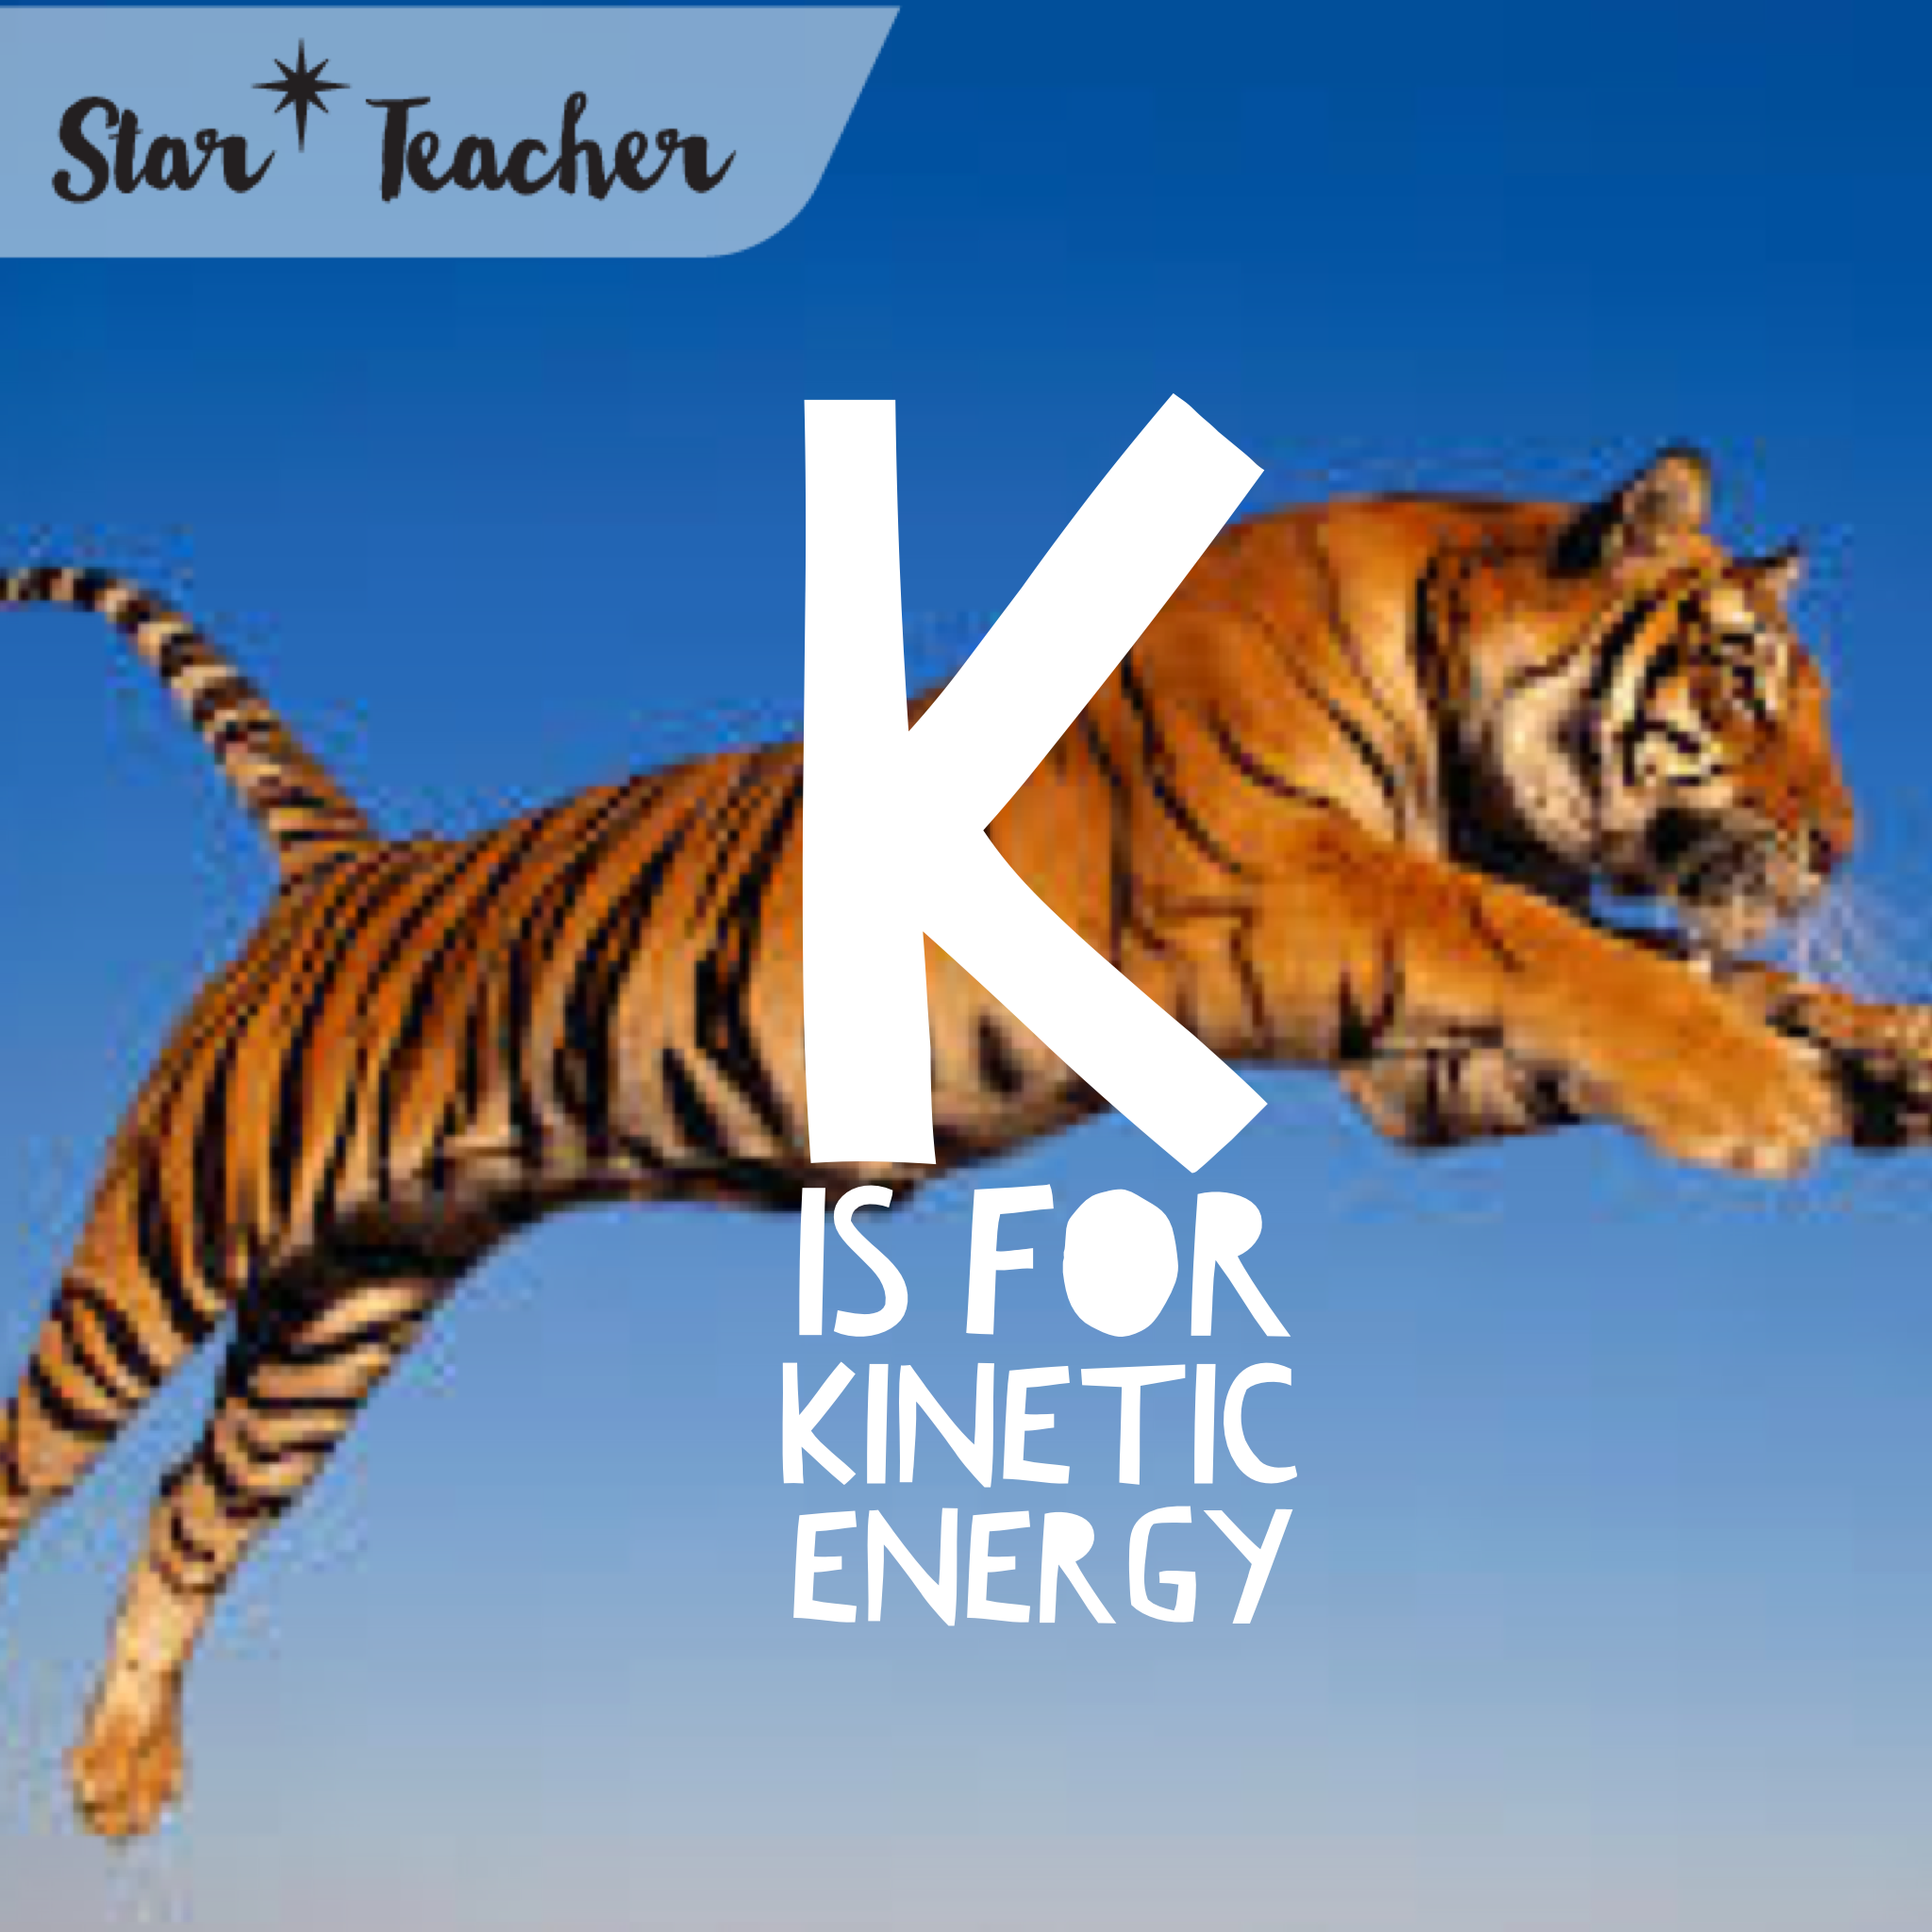 Kinetic energy - Christian teacher resource